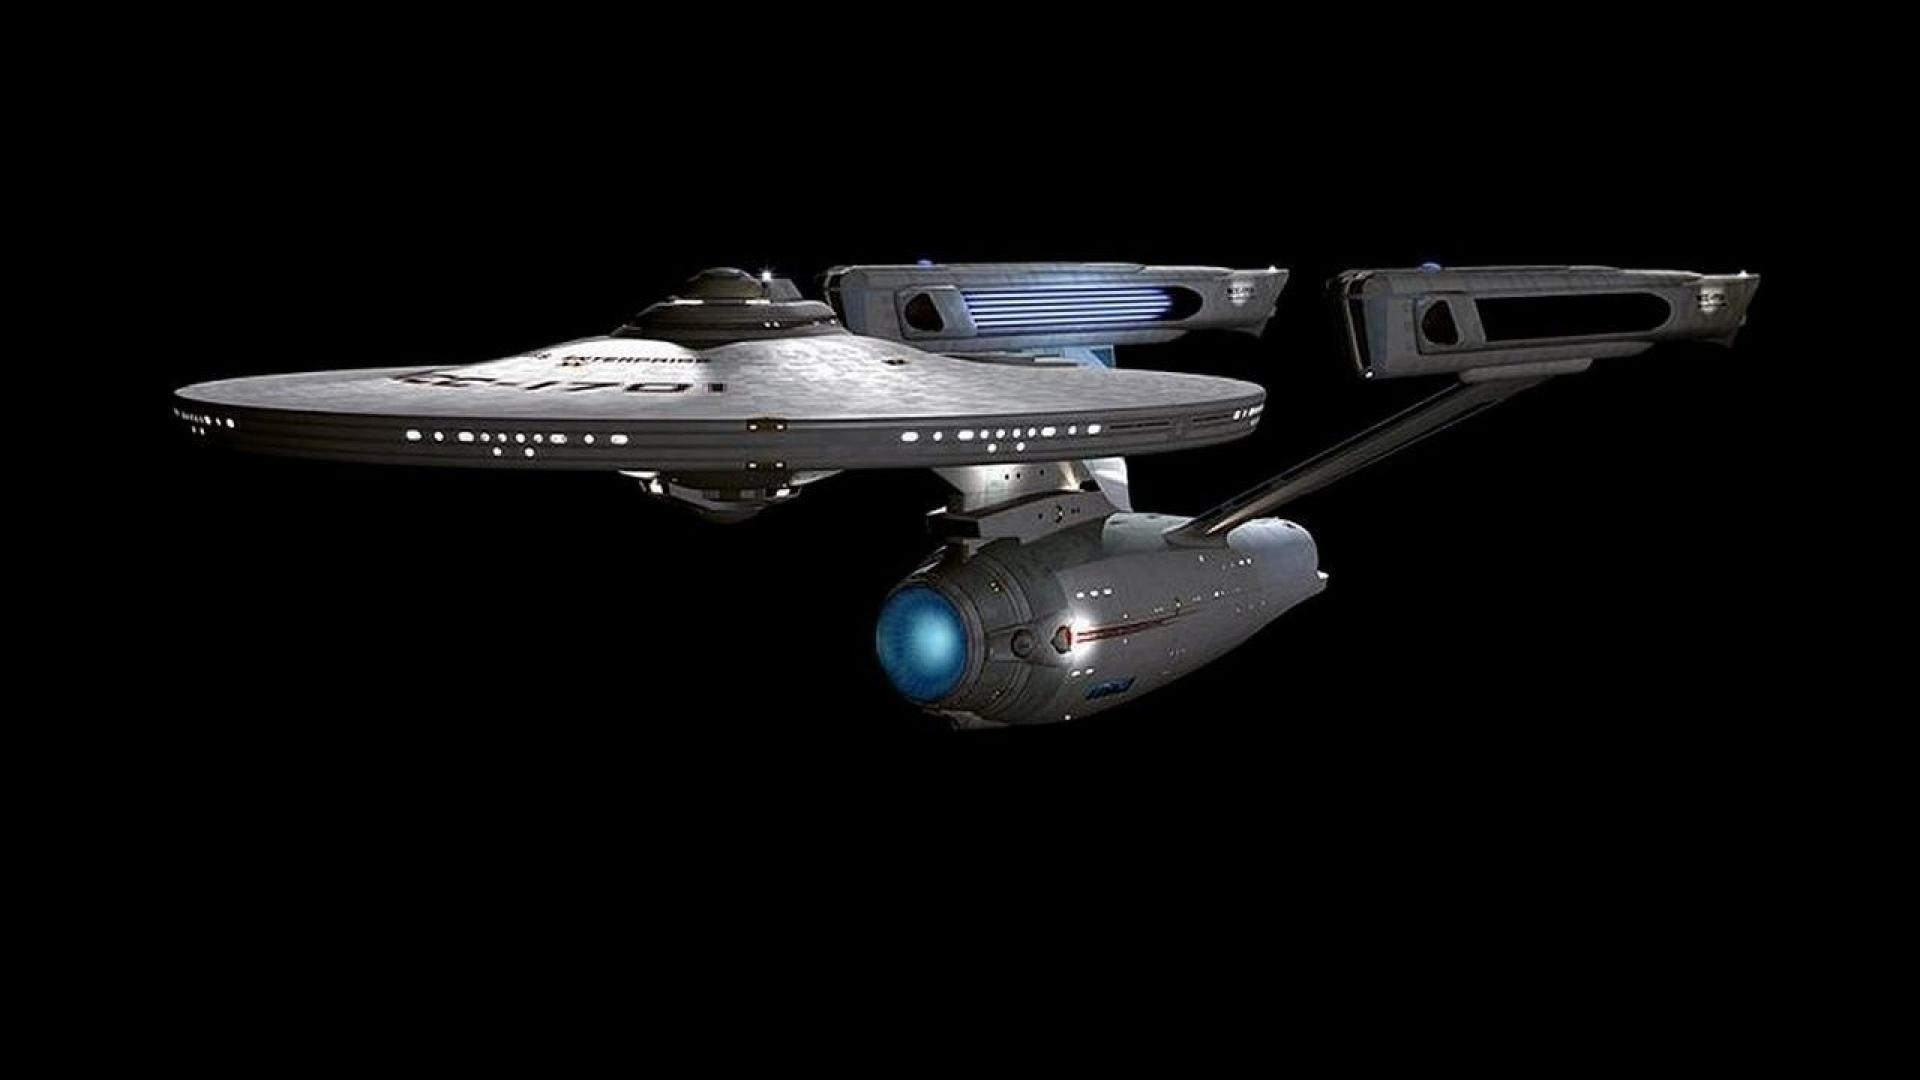 1280x720 star trek wallpaper   wallpapersafari